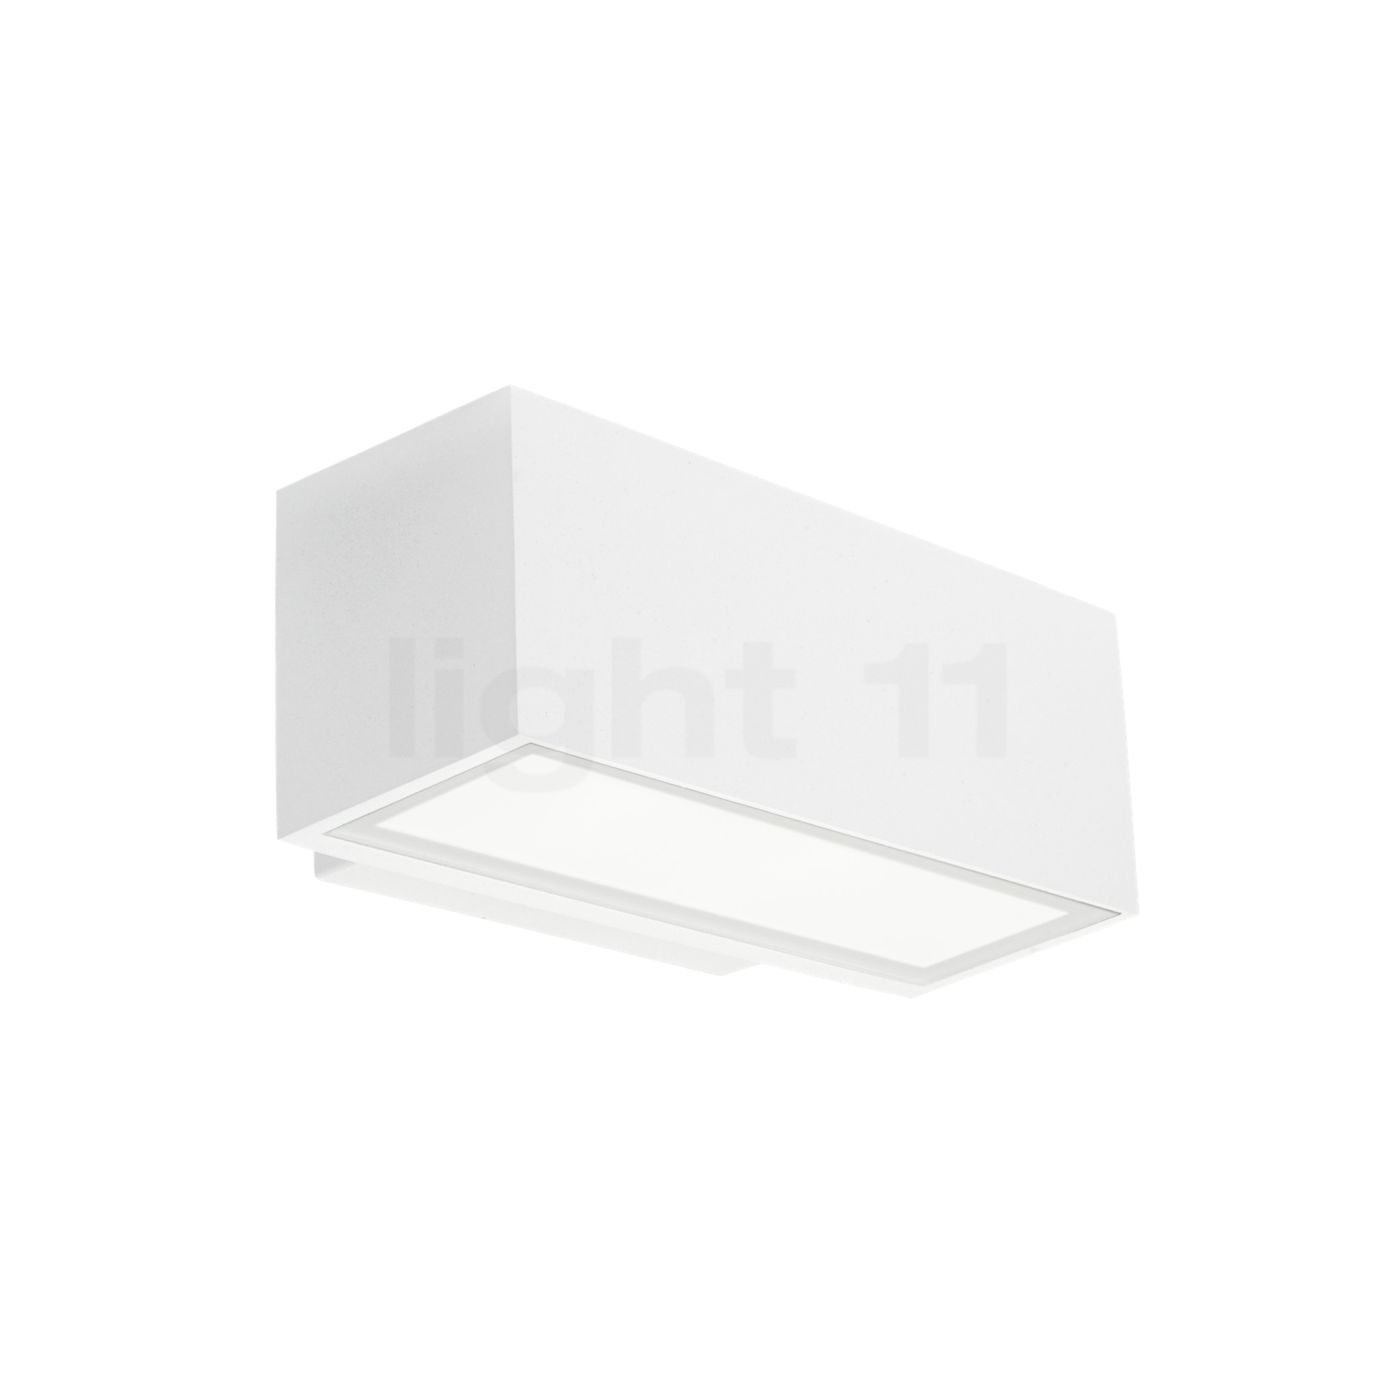 LEDS-C4 Afrodita Up/Down 17.5W Wandleuchte LED, weiß 05-9911-14-CL